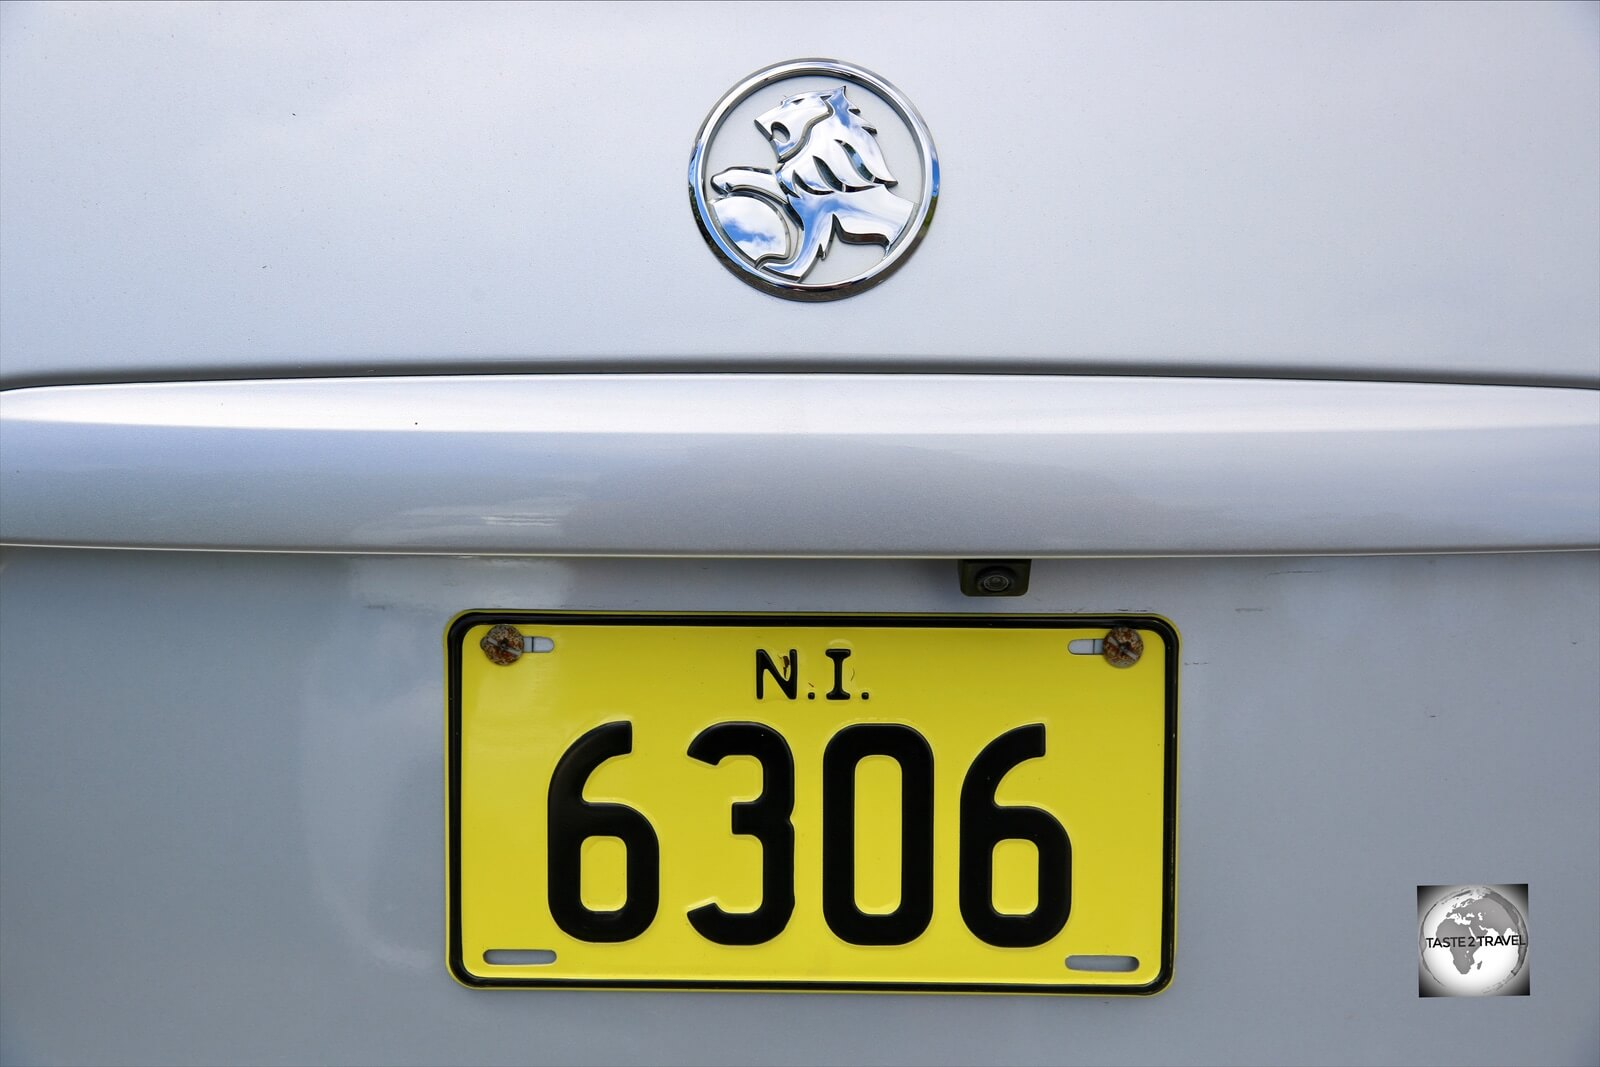 A Norfolk Island license plate.